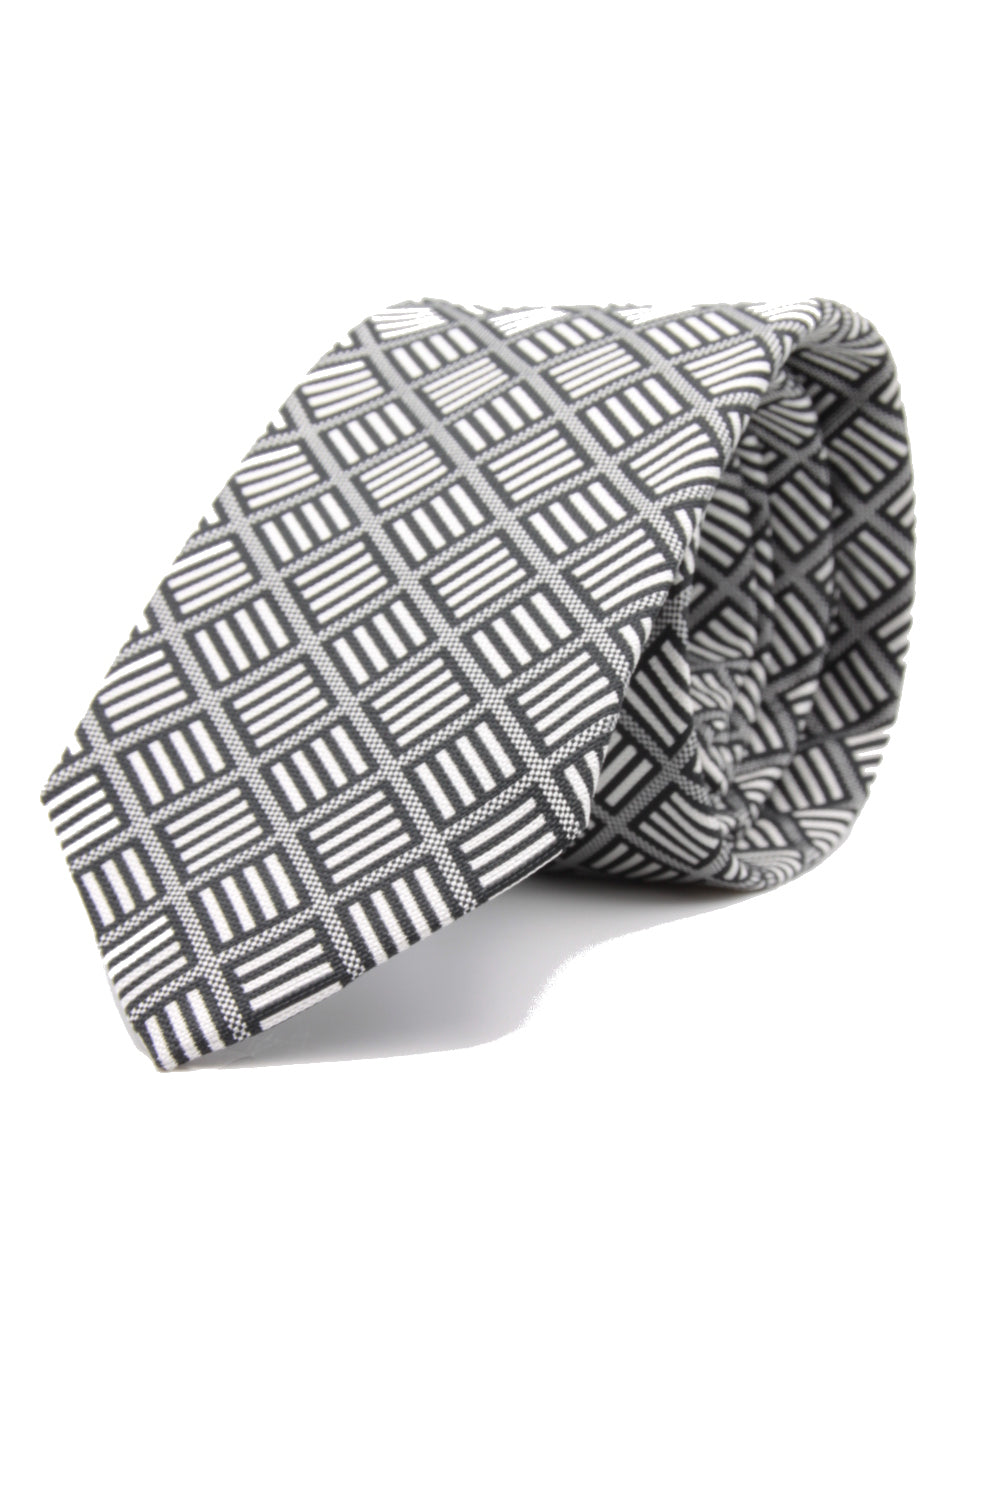 drake's Grey, black and white optical print tie